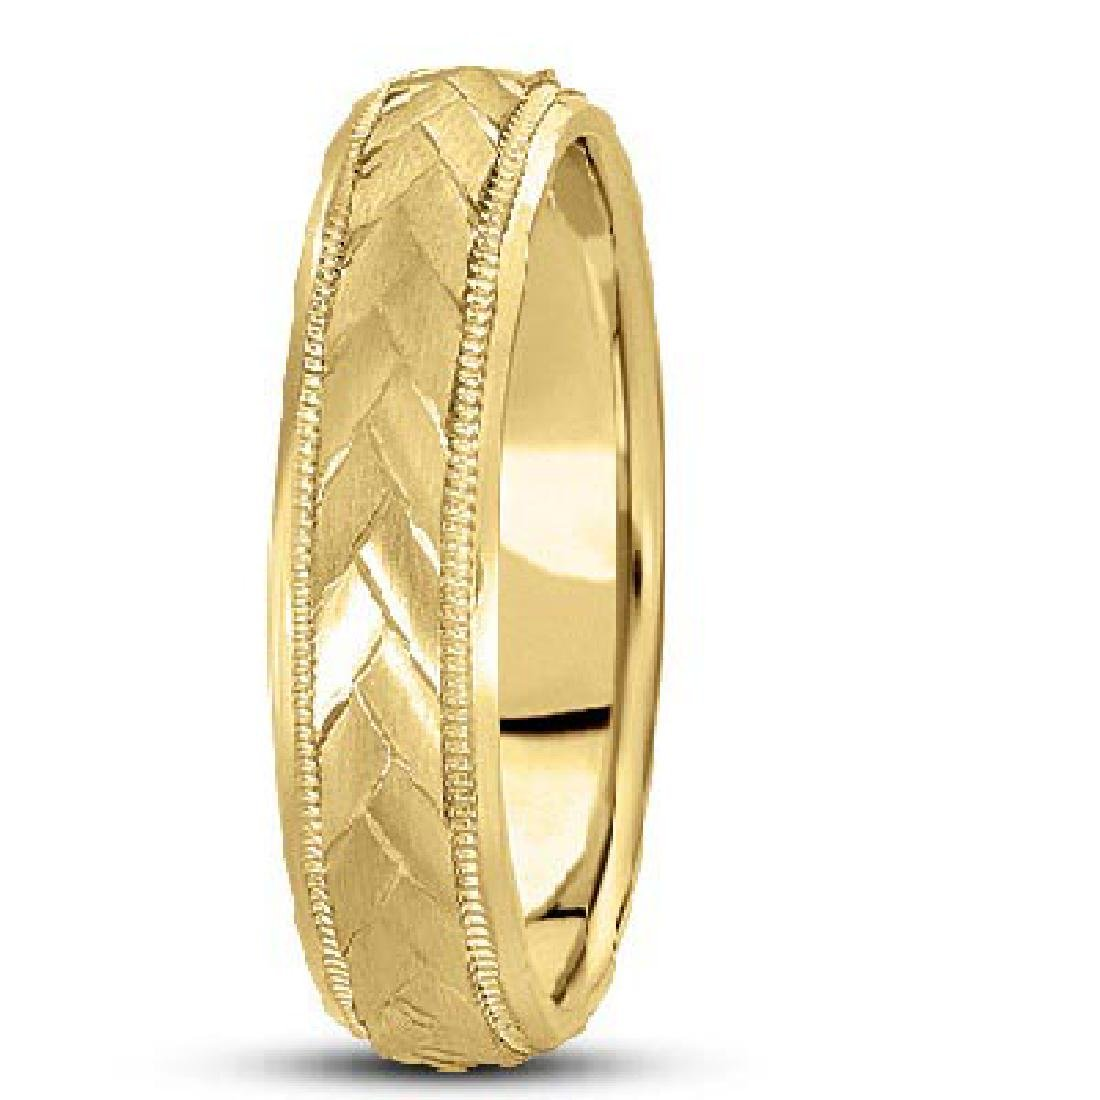 77e579b7010da Braided Mens Wedding Ring Diamond Cut Band 14k Yellow